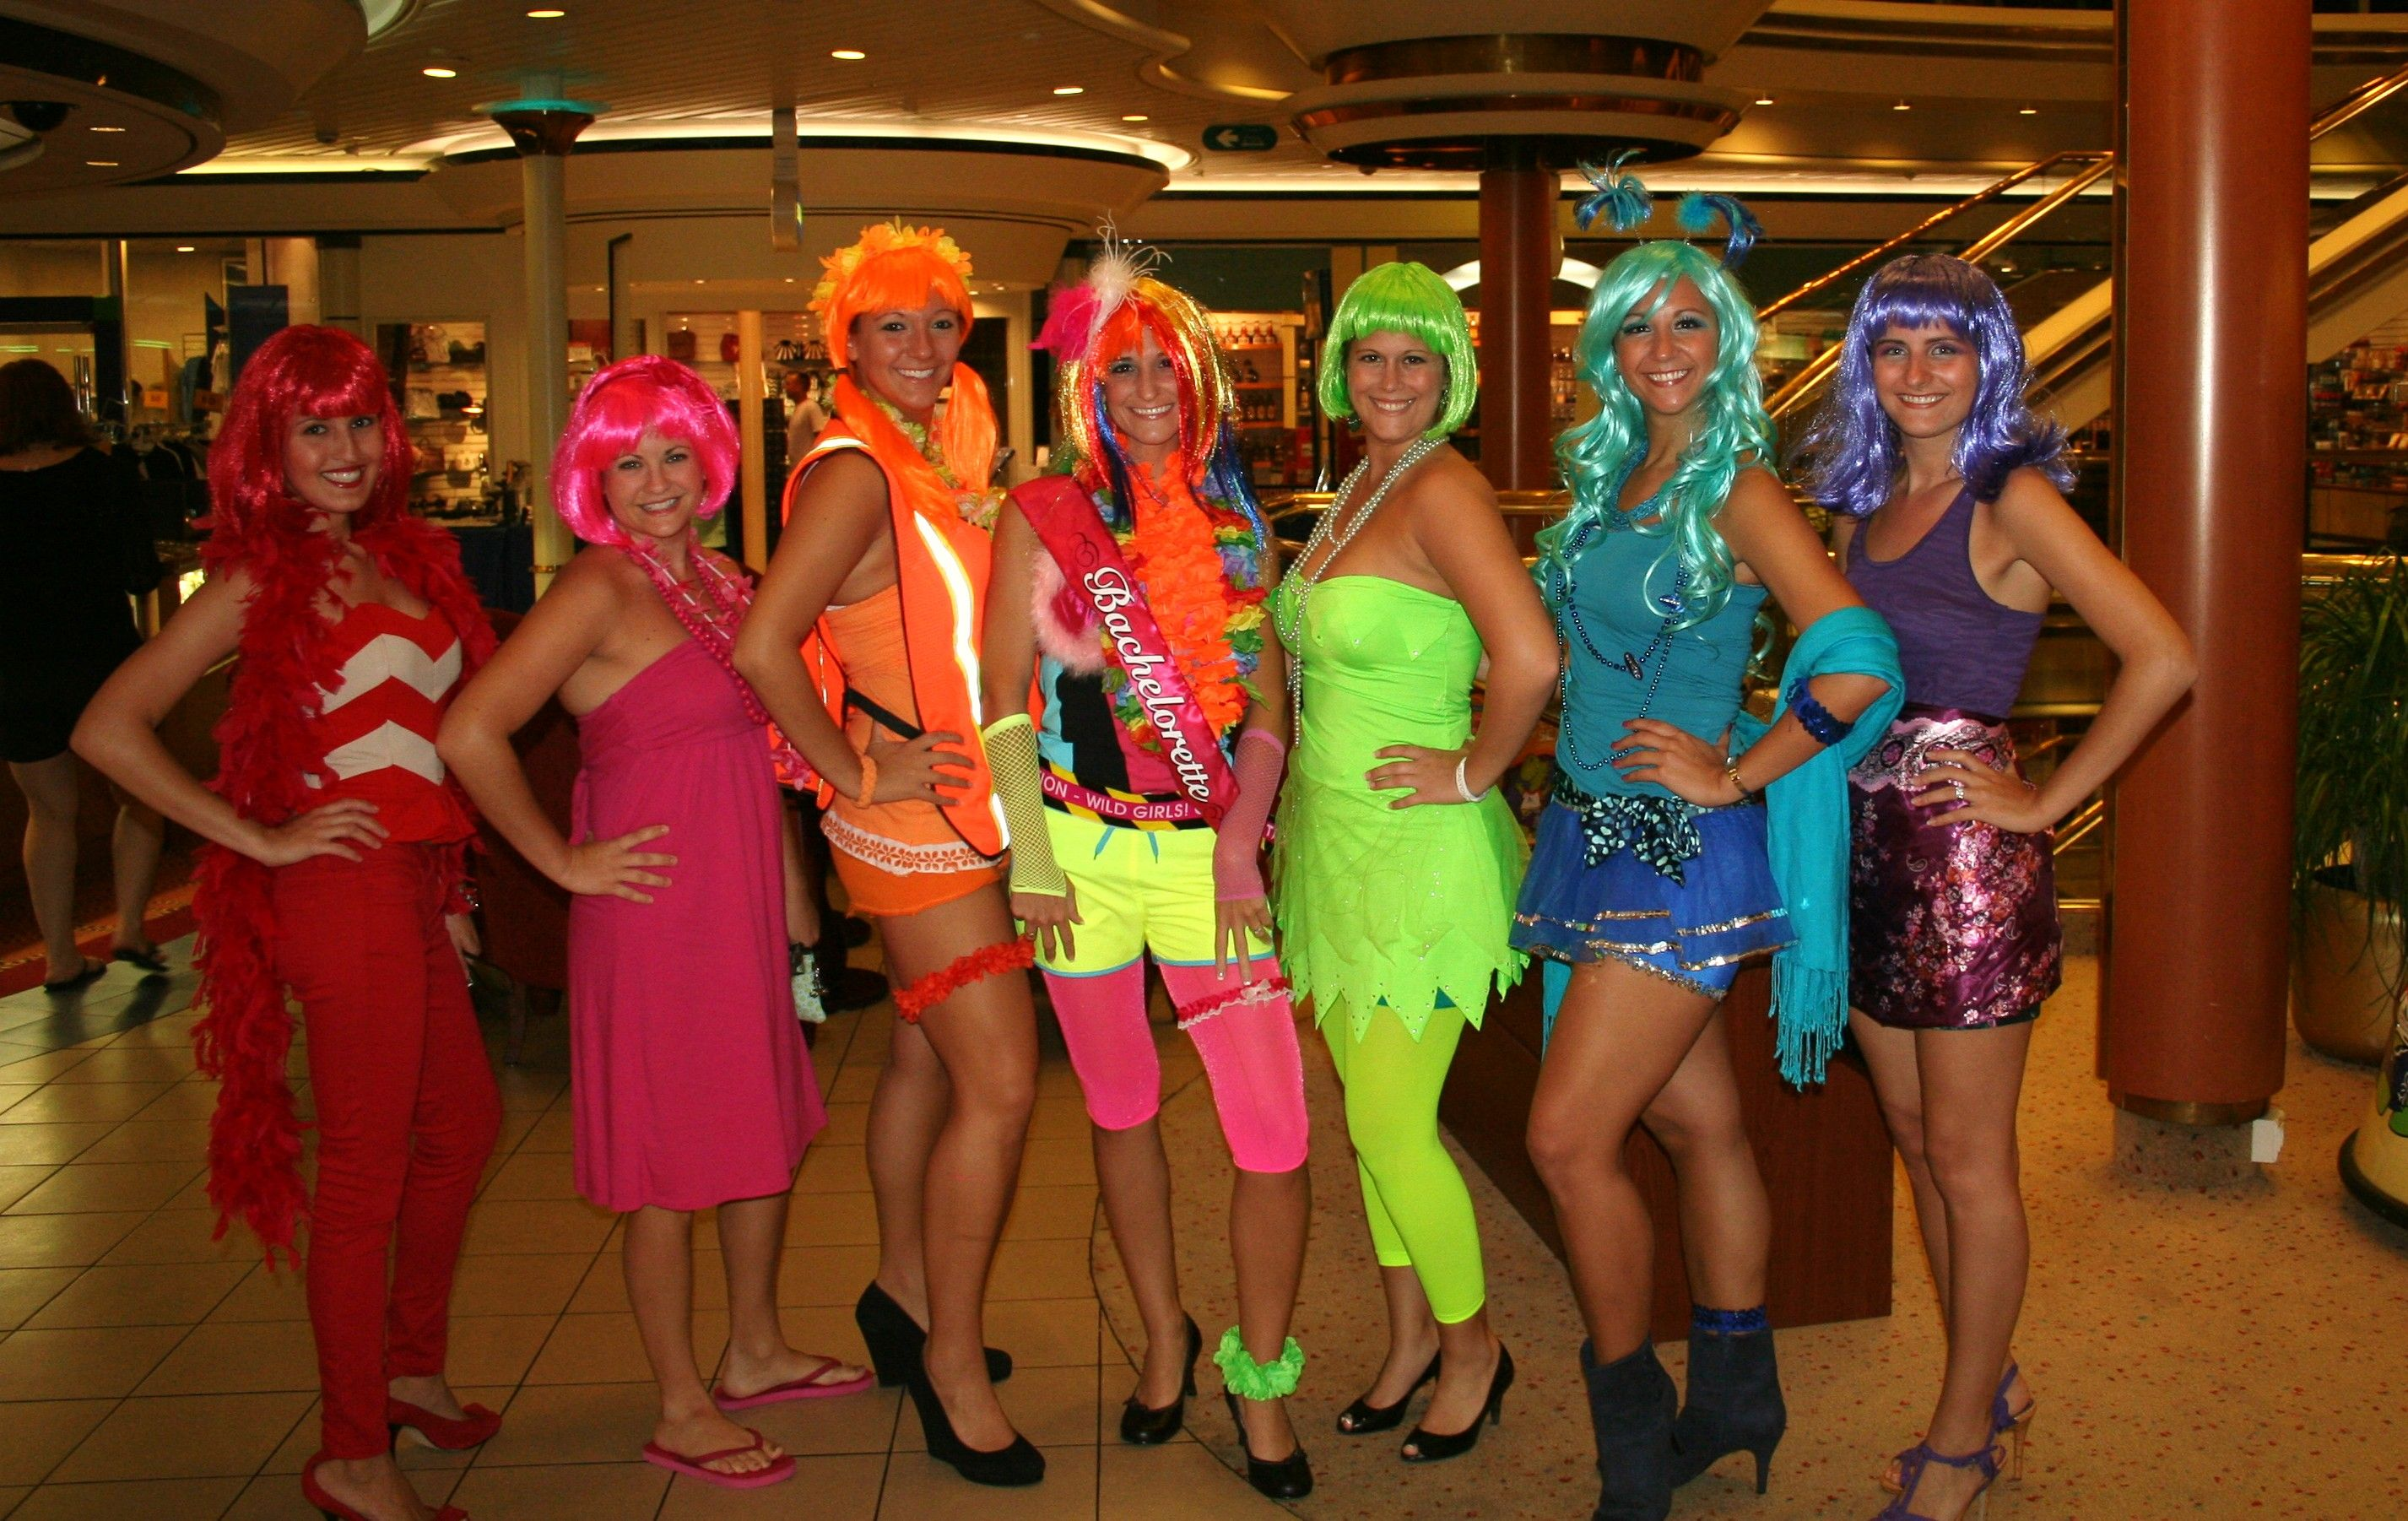 Group Fancy Dress Ideas For Hen Party: Bachelorette Party Neon Theme. Can I Request That We NOT